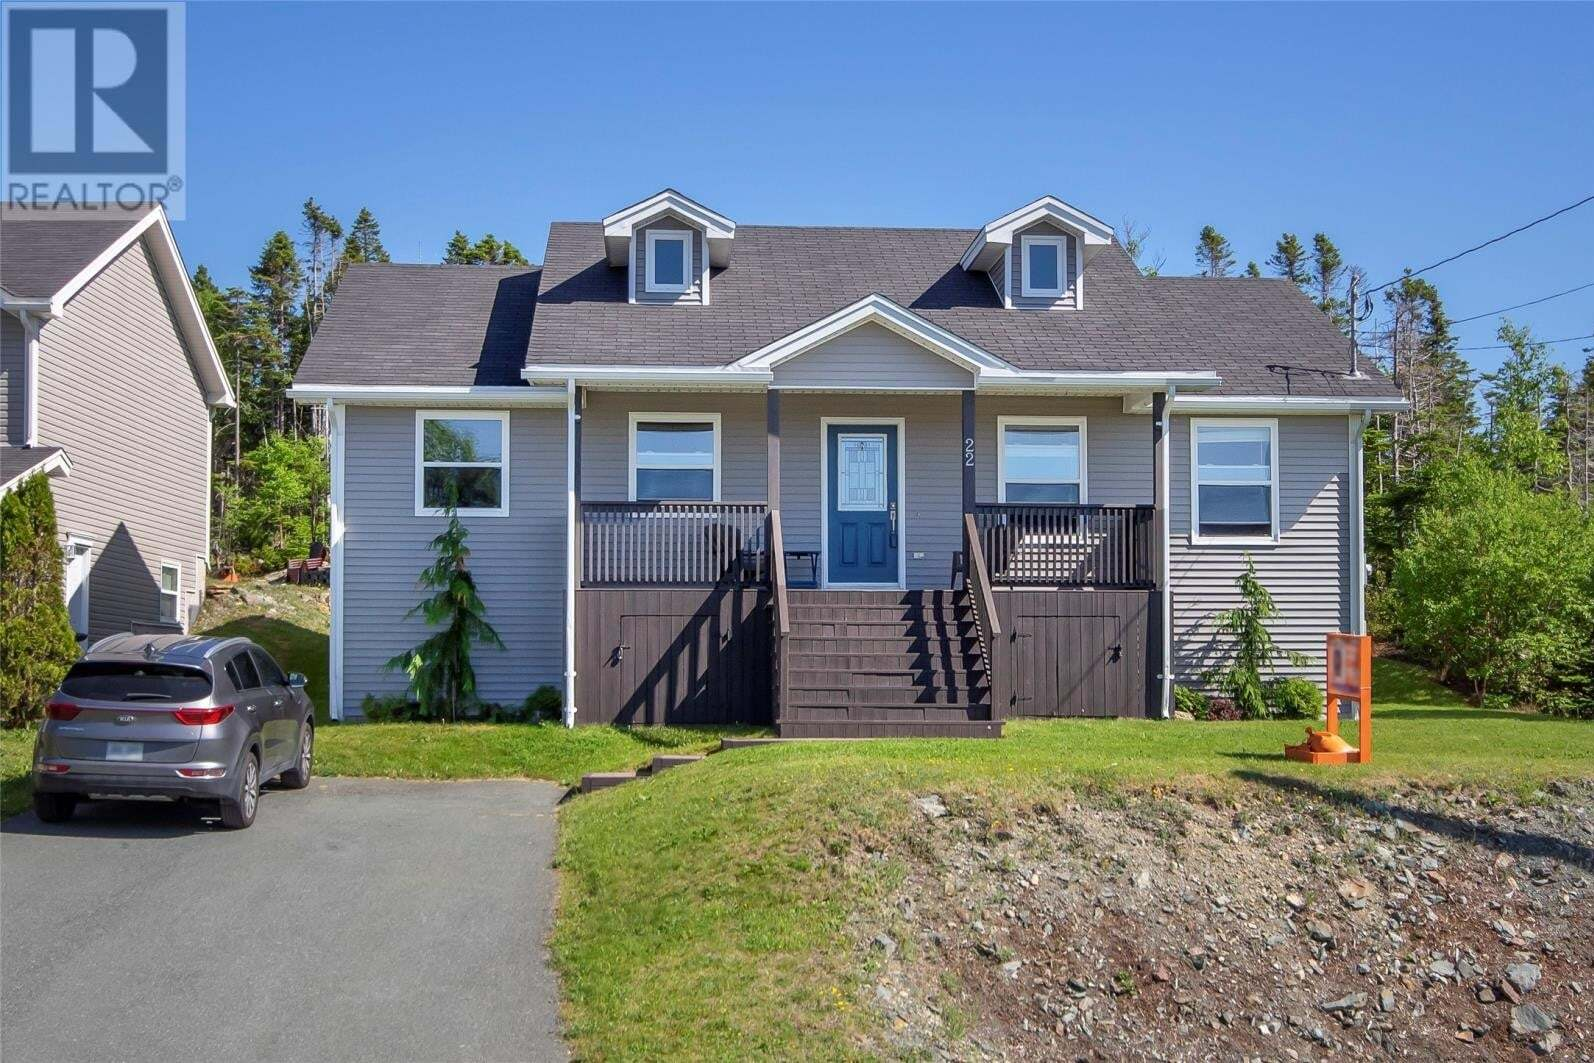 House for sale at 22 School Rd Portugal Cove- St Philips Newfoundland - MLS: 1214110